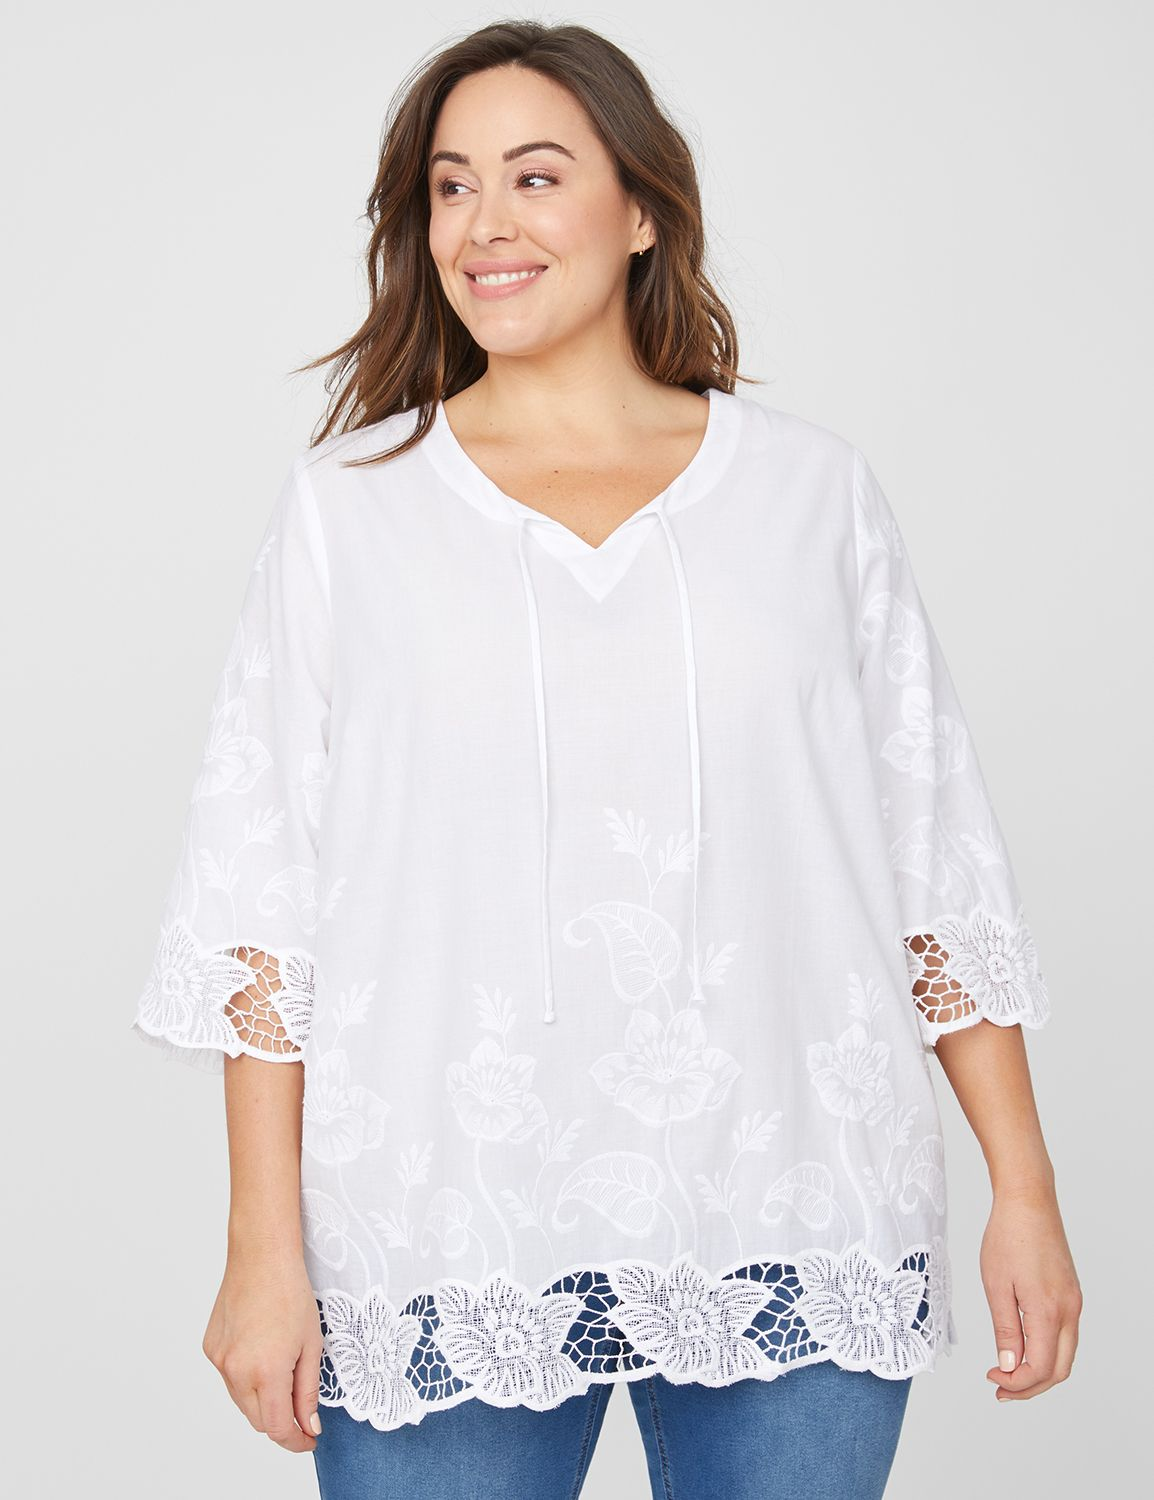 Springs Resort Peasant Top 1091212 Nuance Embroidered Peasant MP-300105868